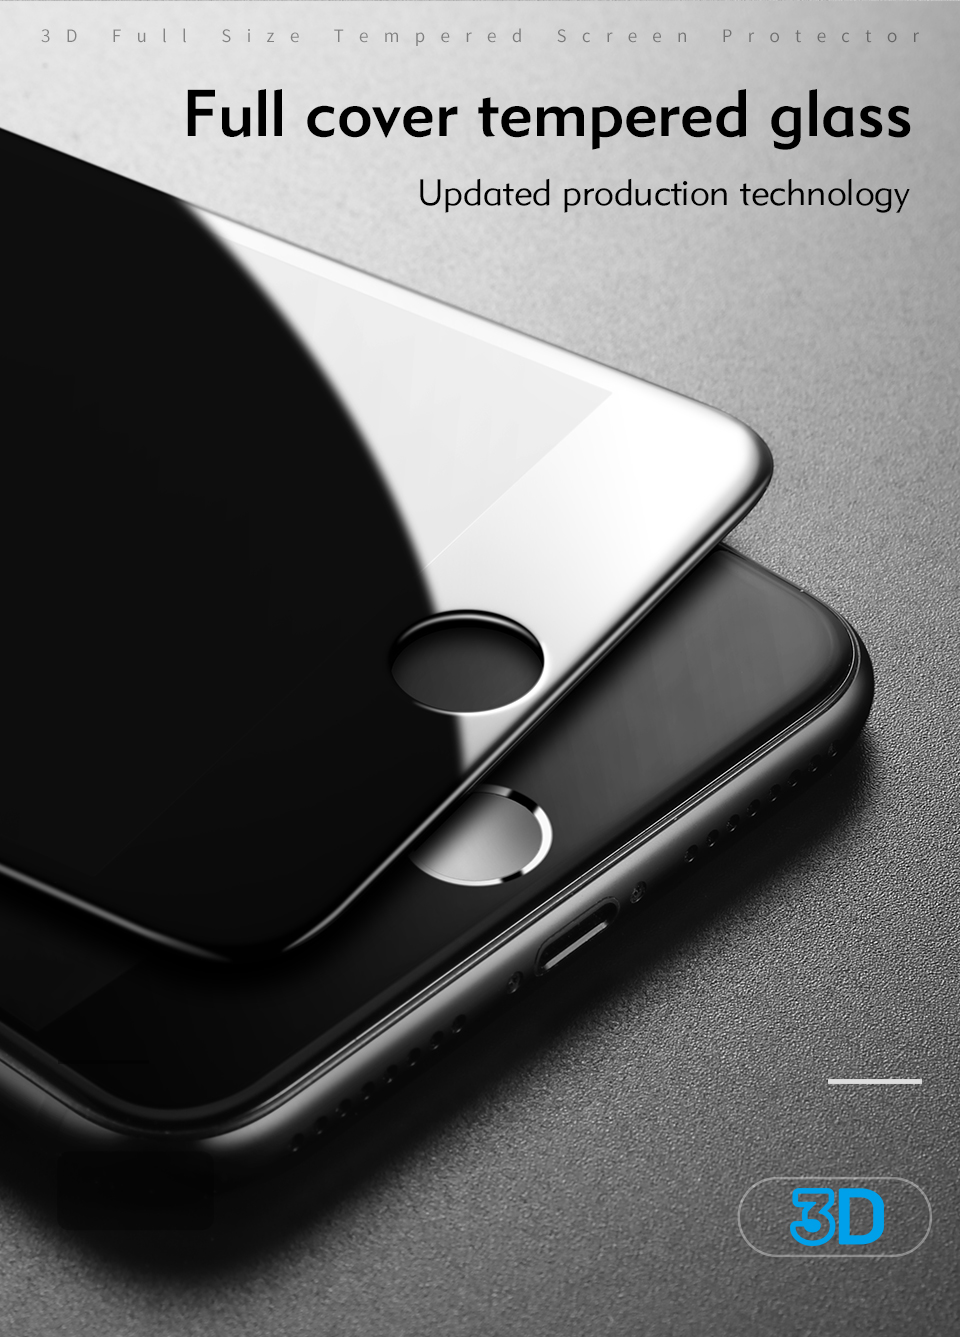 Benks Glass For Iphone 8 7 6s Plus Full Curved Tempered 2in1 Gravity Case Cover 6 Updated Production Technology 960 04